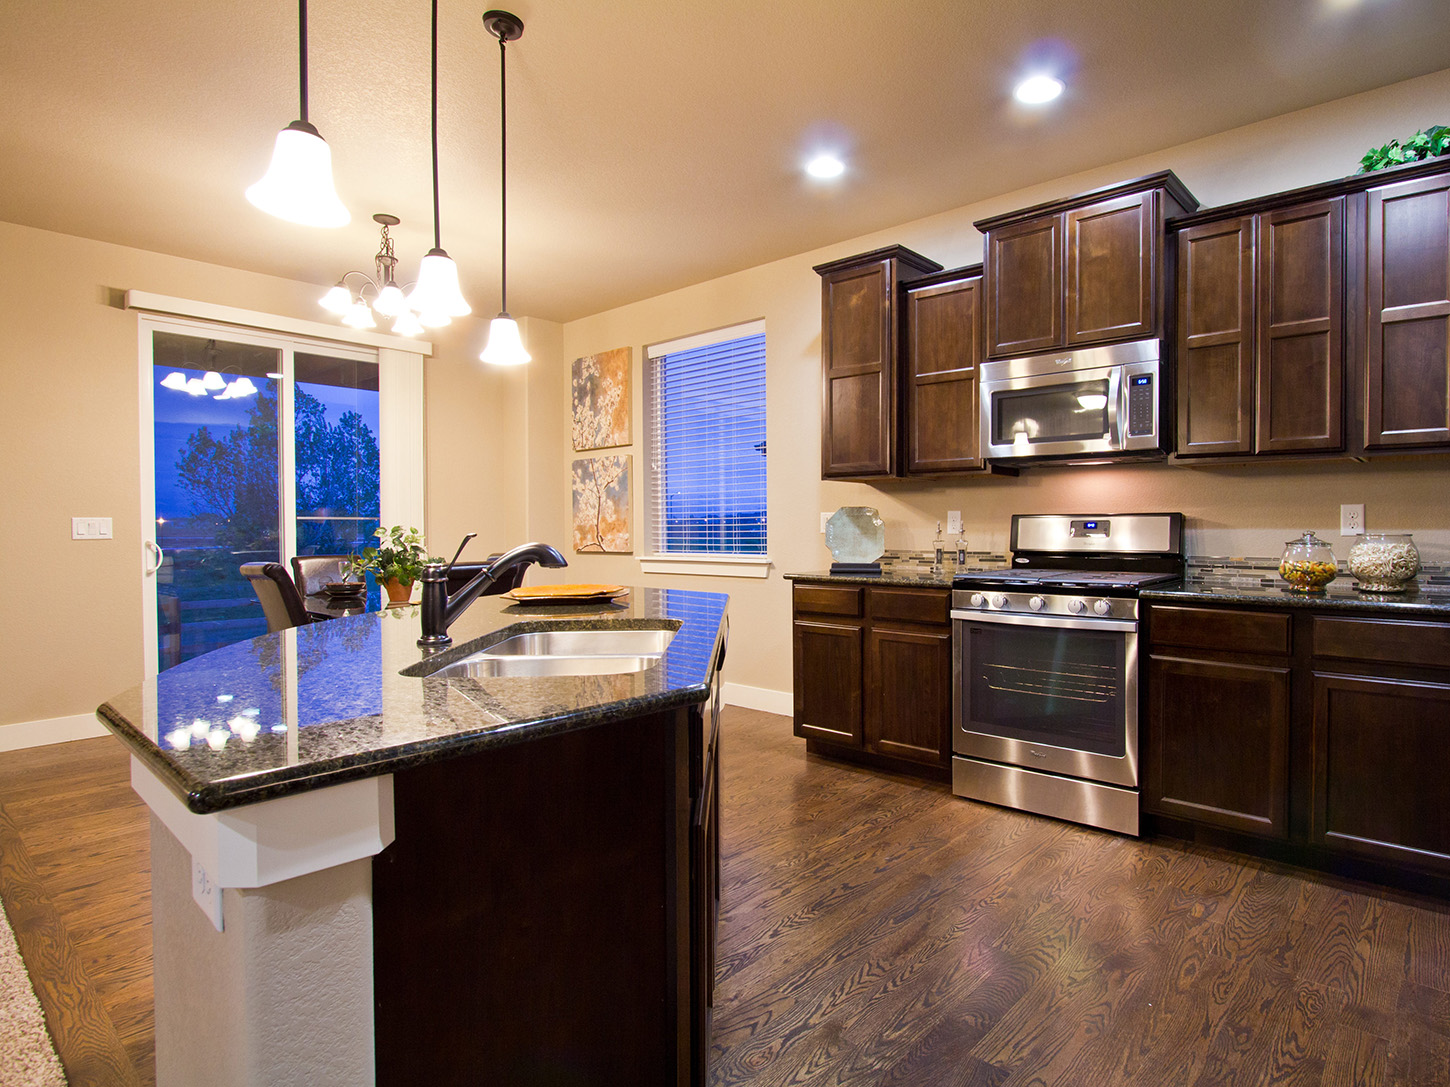 05-glendale-fort_collins-kitchen-new_home_community